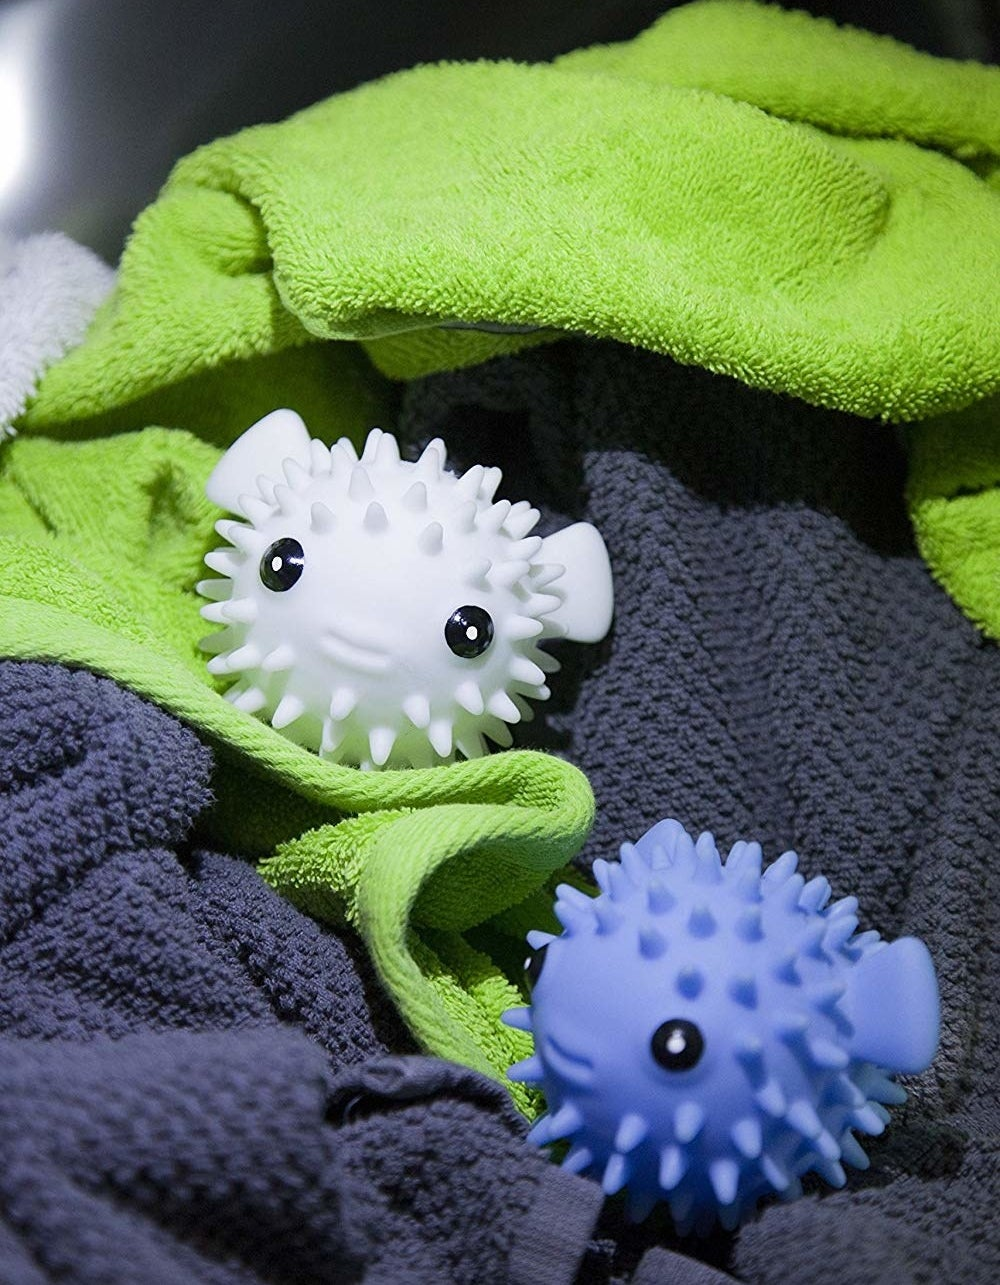 One white and one blue pufferfish nestled in towels